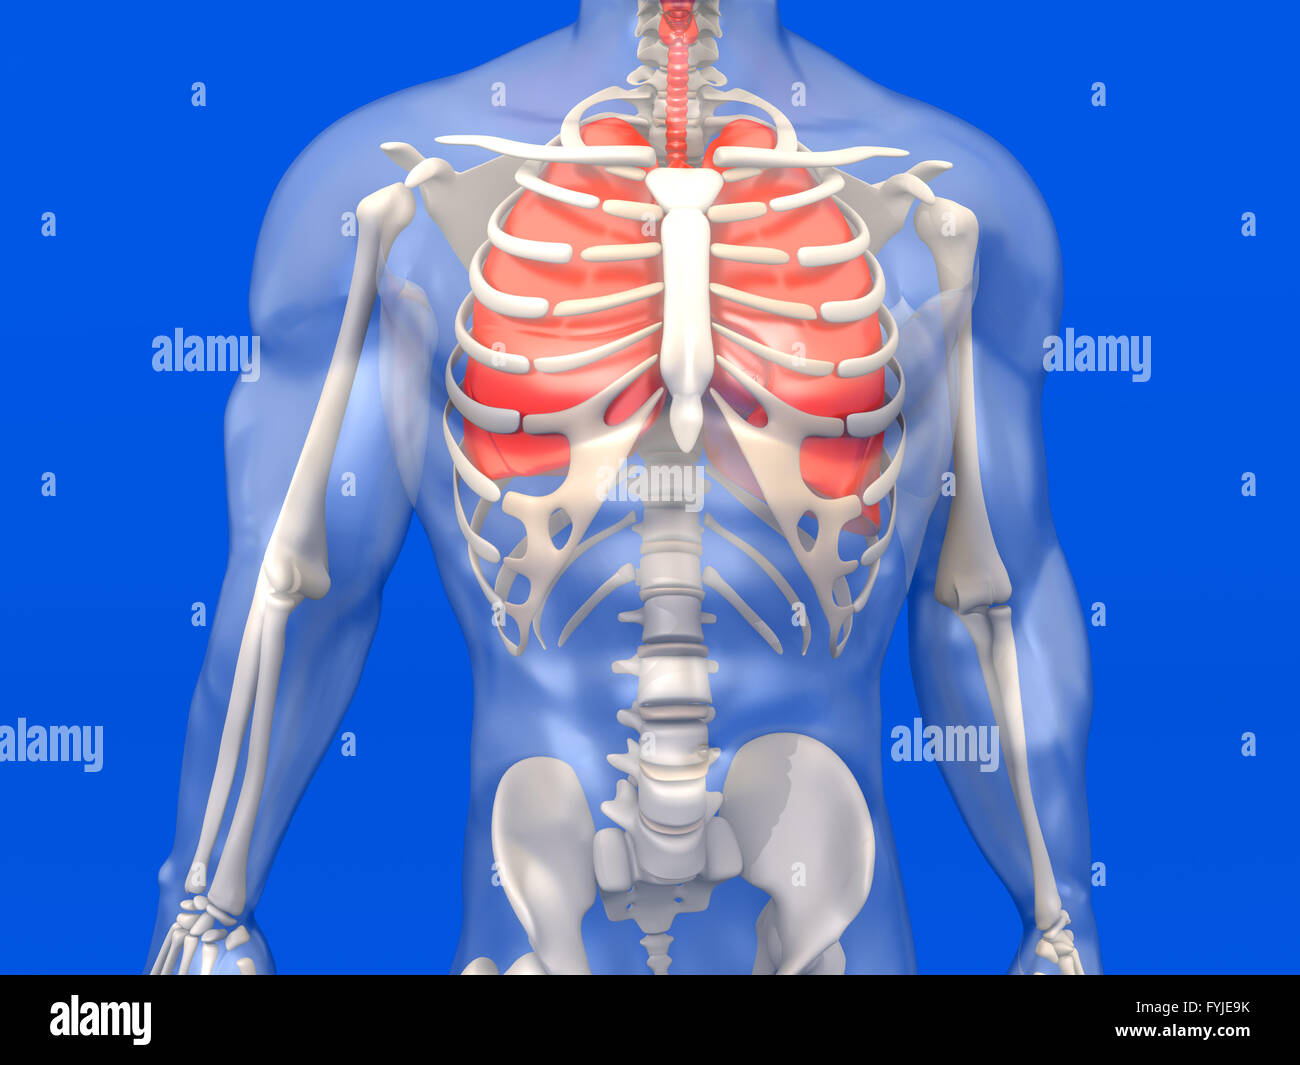 Human Anatomy Visualization The Lungs In A Semi Transparent Body